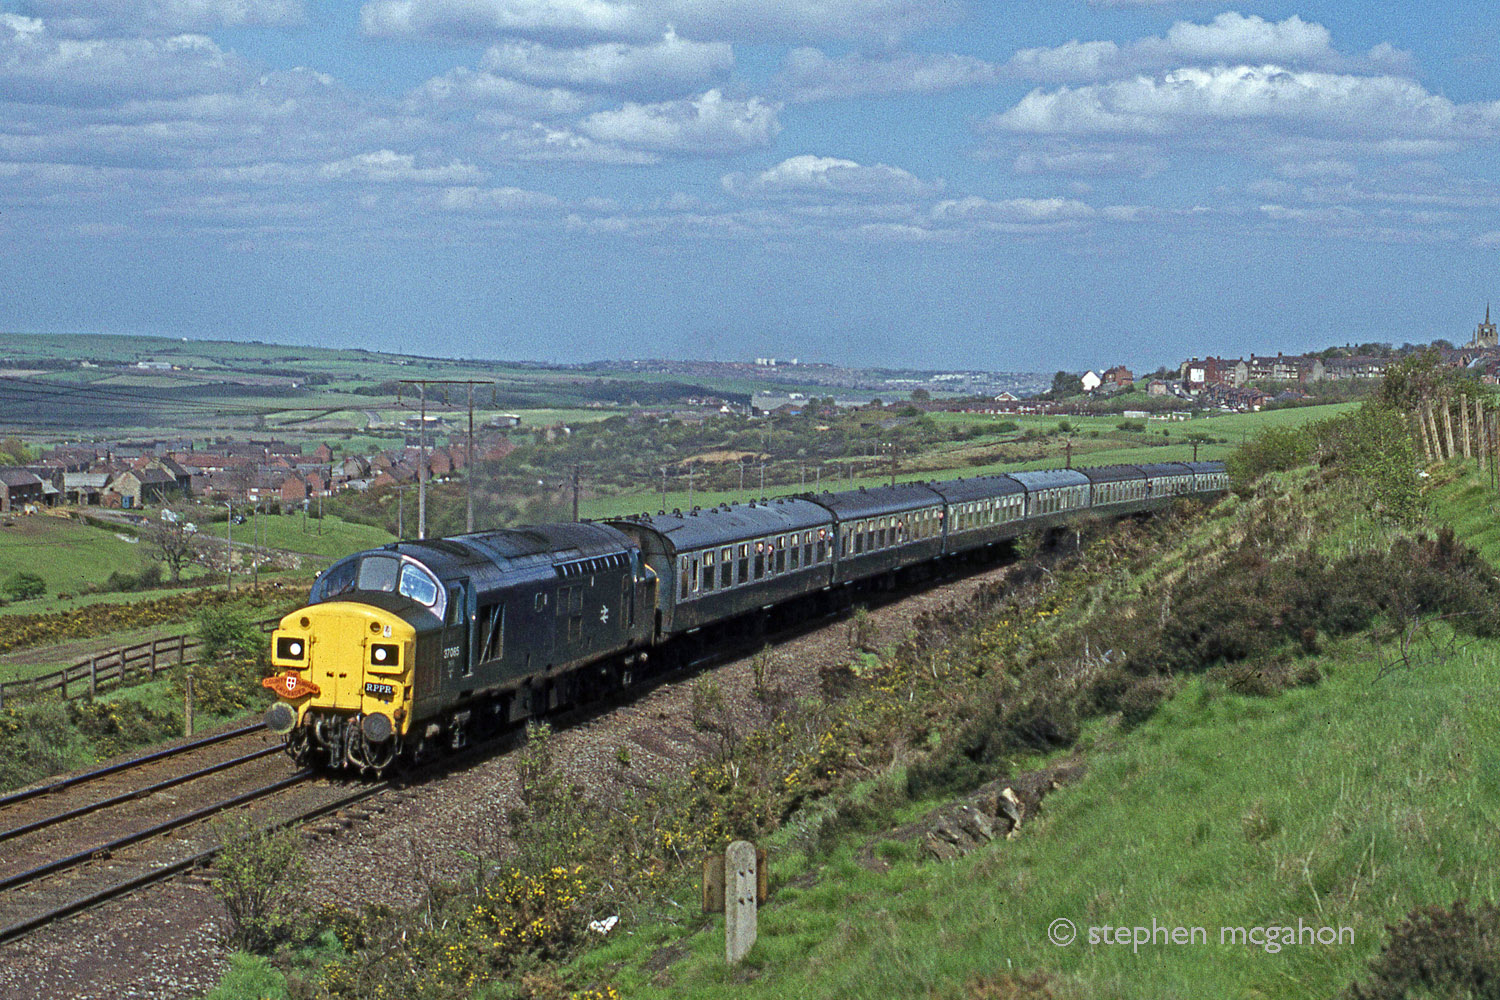 The County Durham Crusader passes Oxhill on 19 May 1979 heading towards Consett. Photo copyright Stephen McGahon